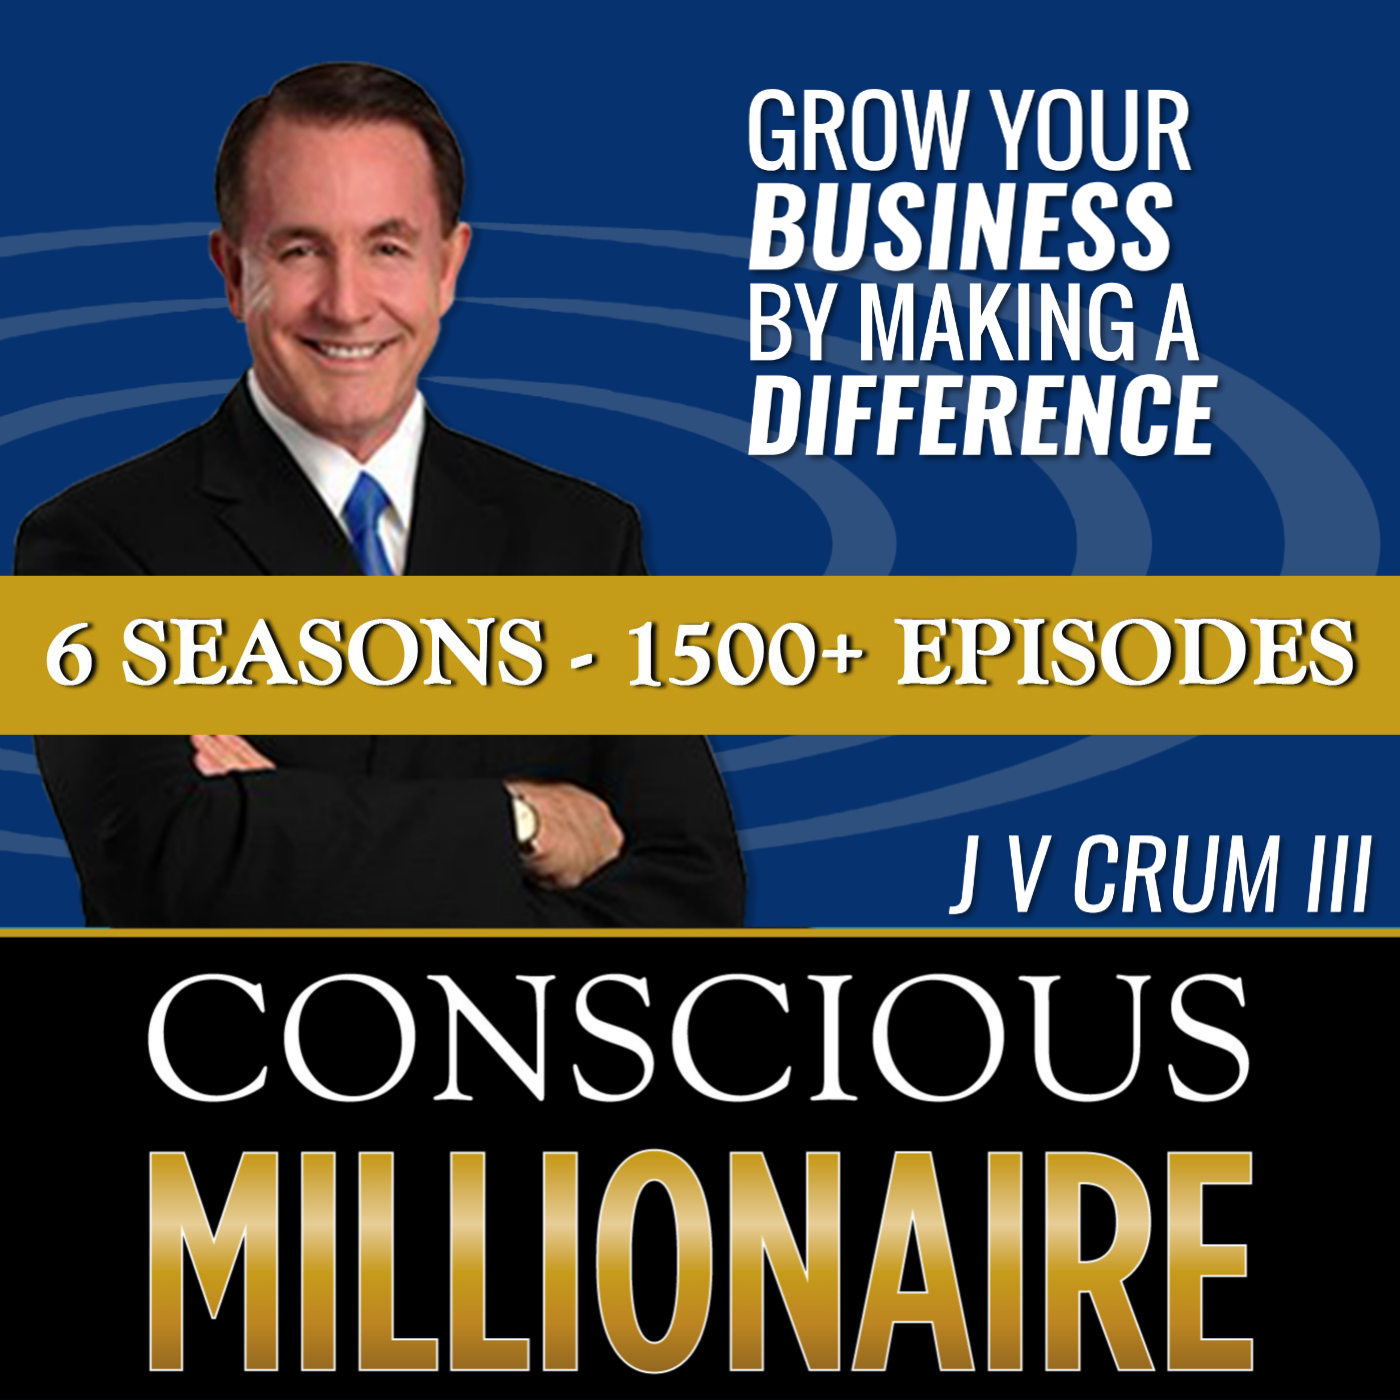 Conscious Millionaire Show ~ Business Coaching and Mentoring 6 Days a Week